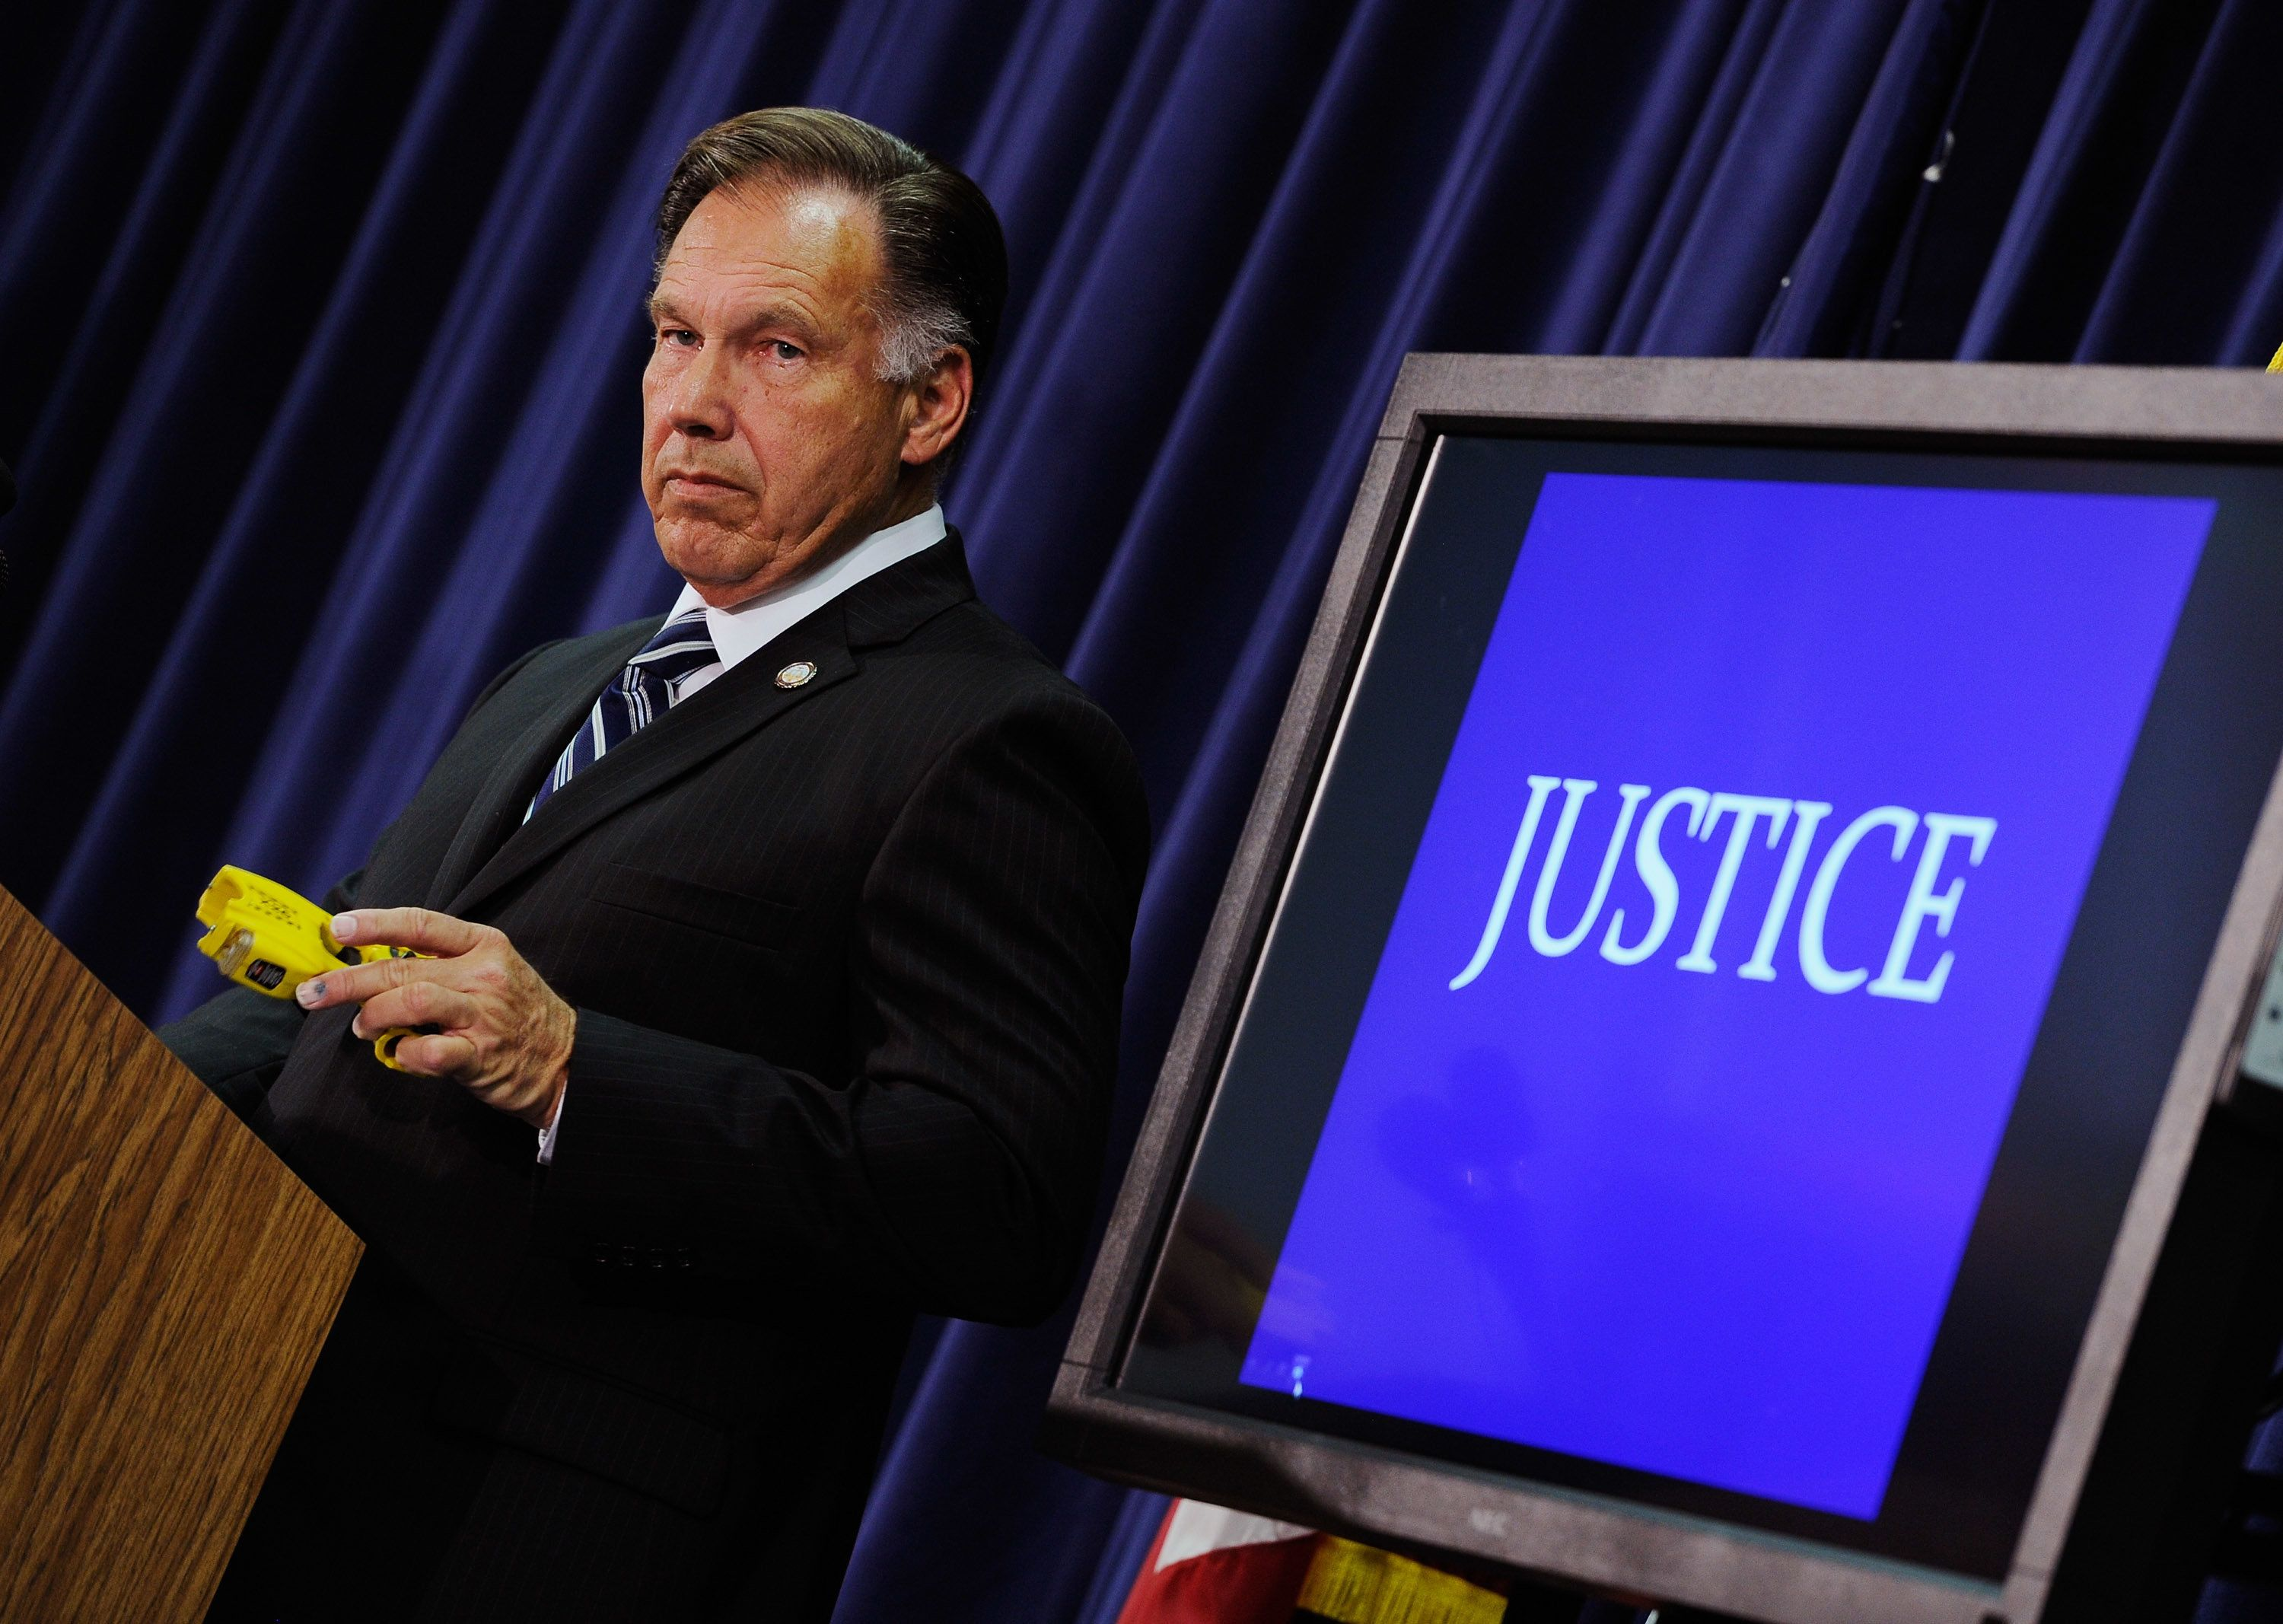 Orange County District Attorney Tony Rackauckas and his office are under investigationfor an alleged jailhouse snitch p